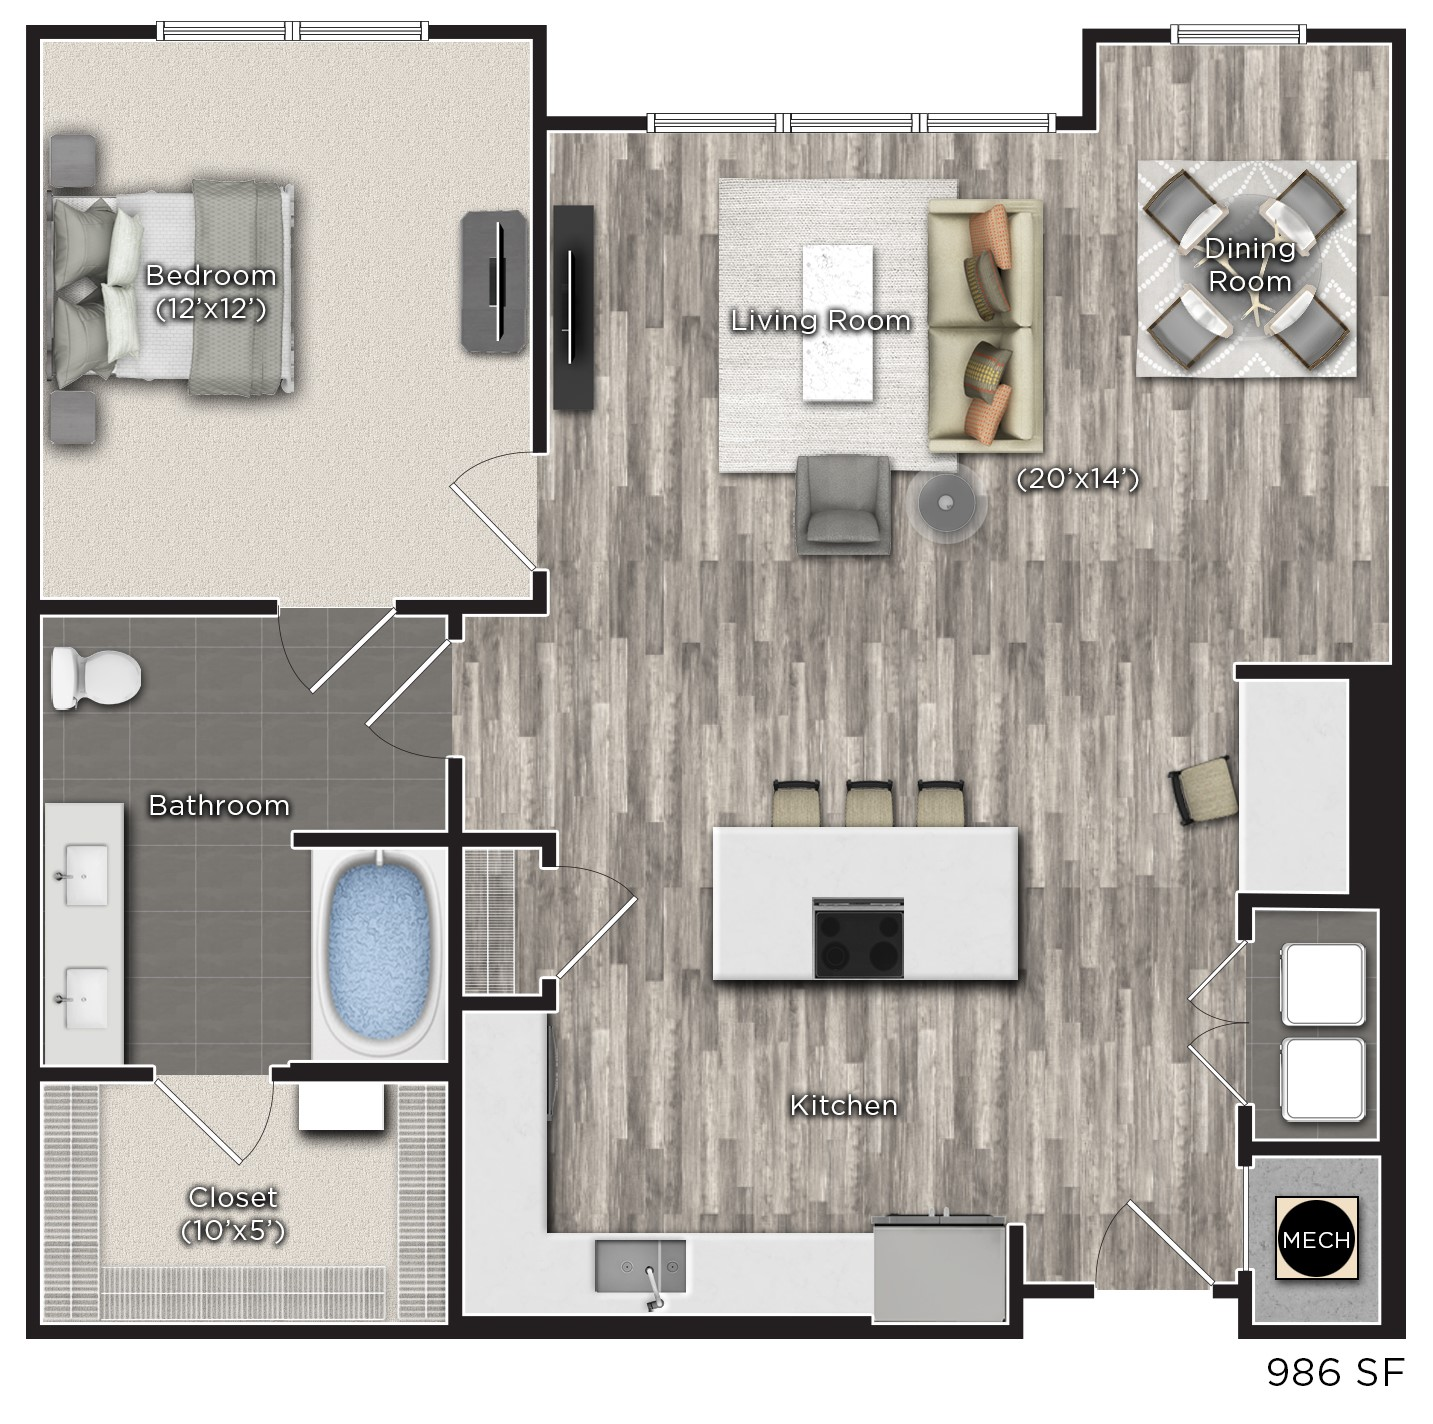 Tens on West - Floorplan - K